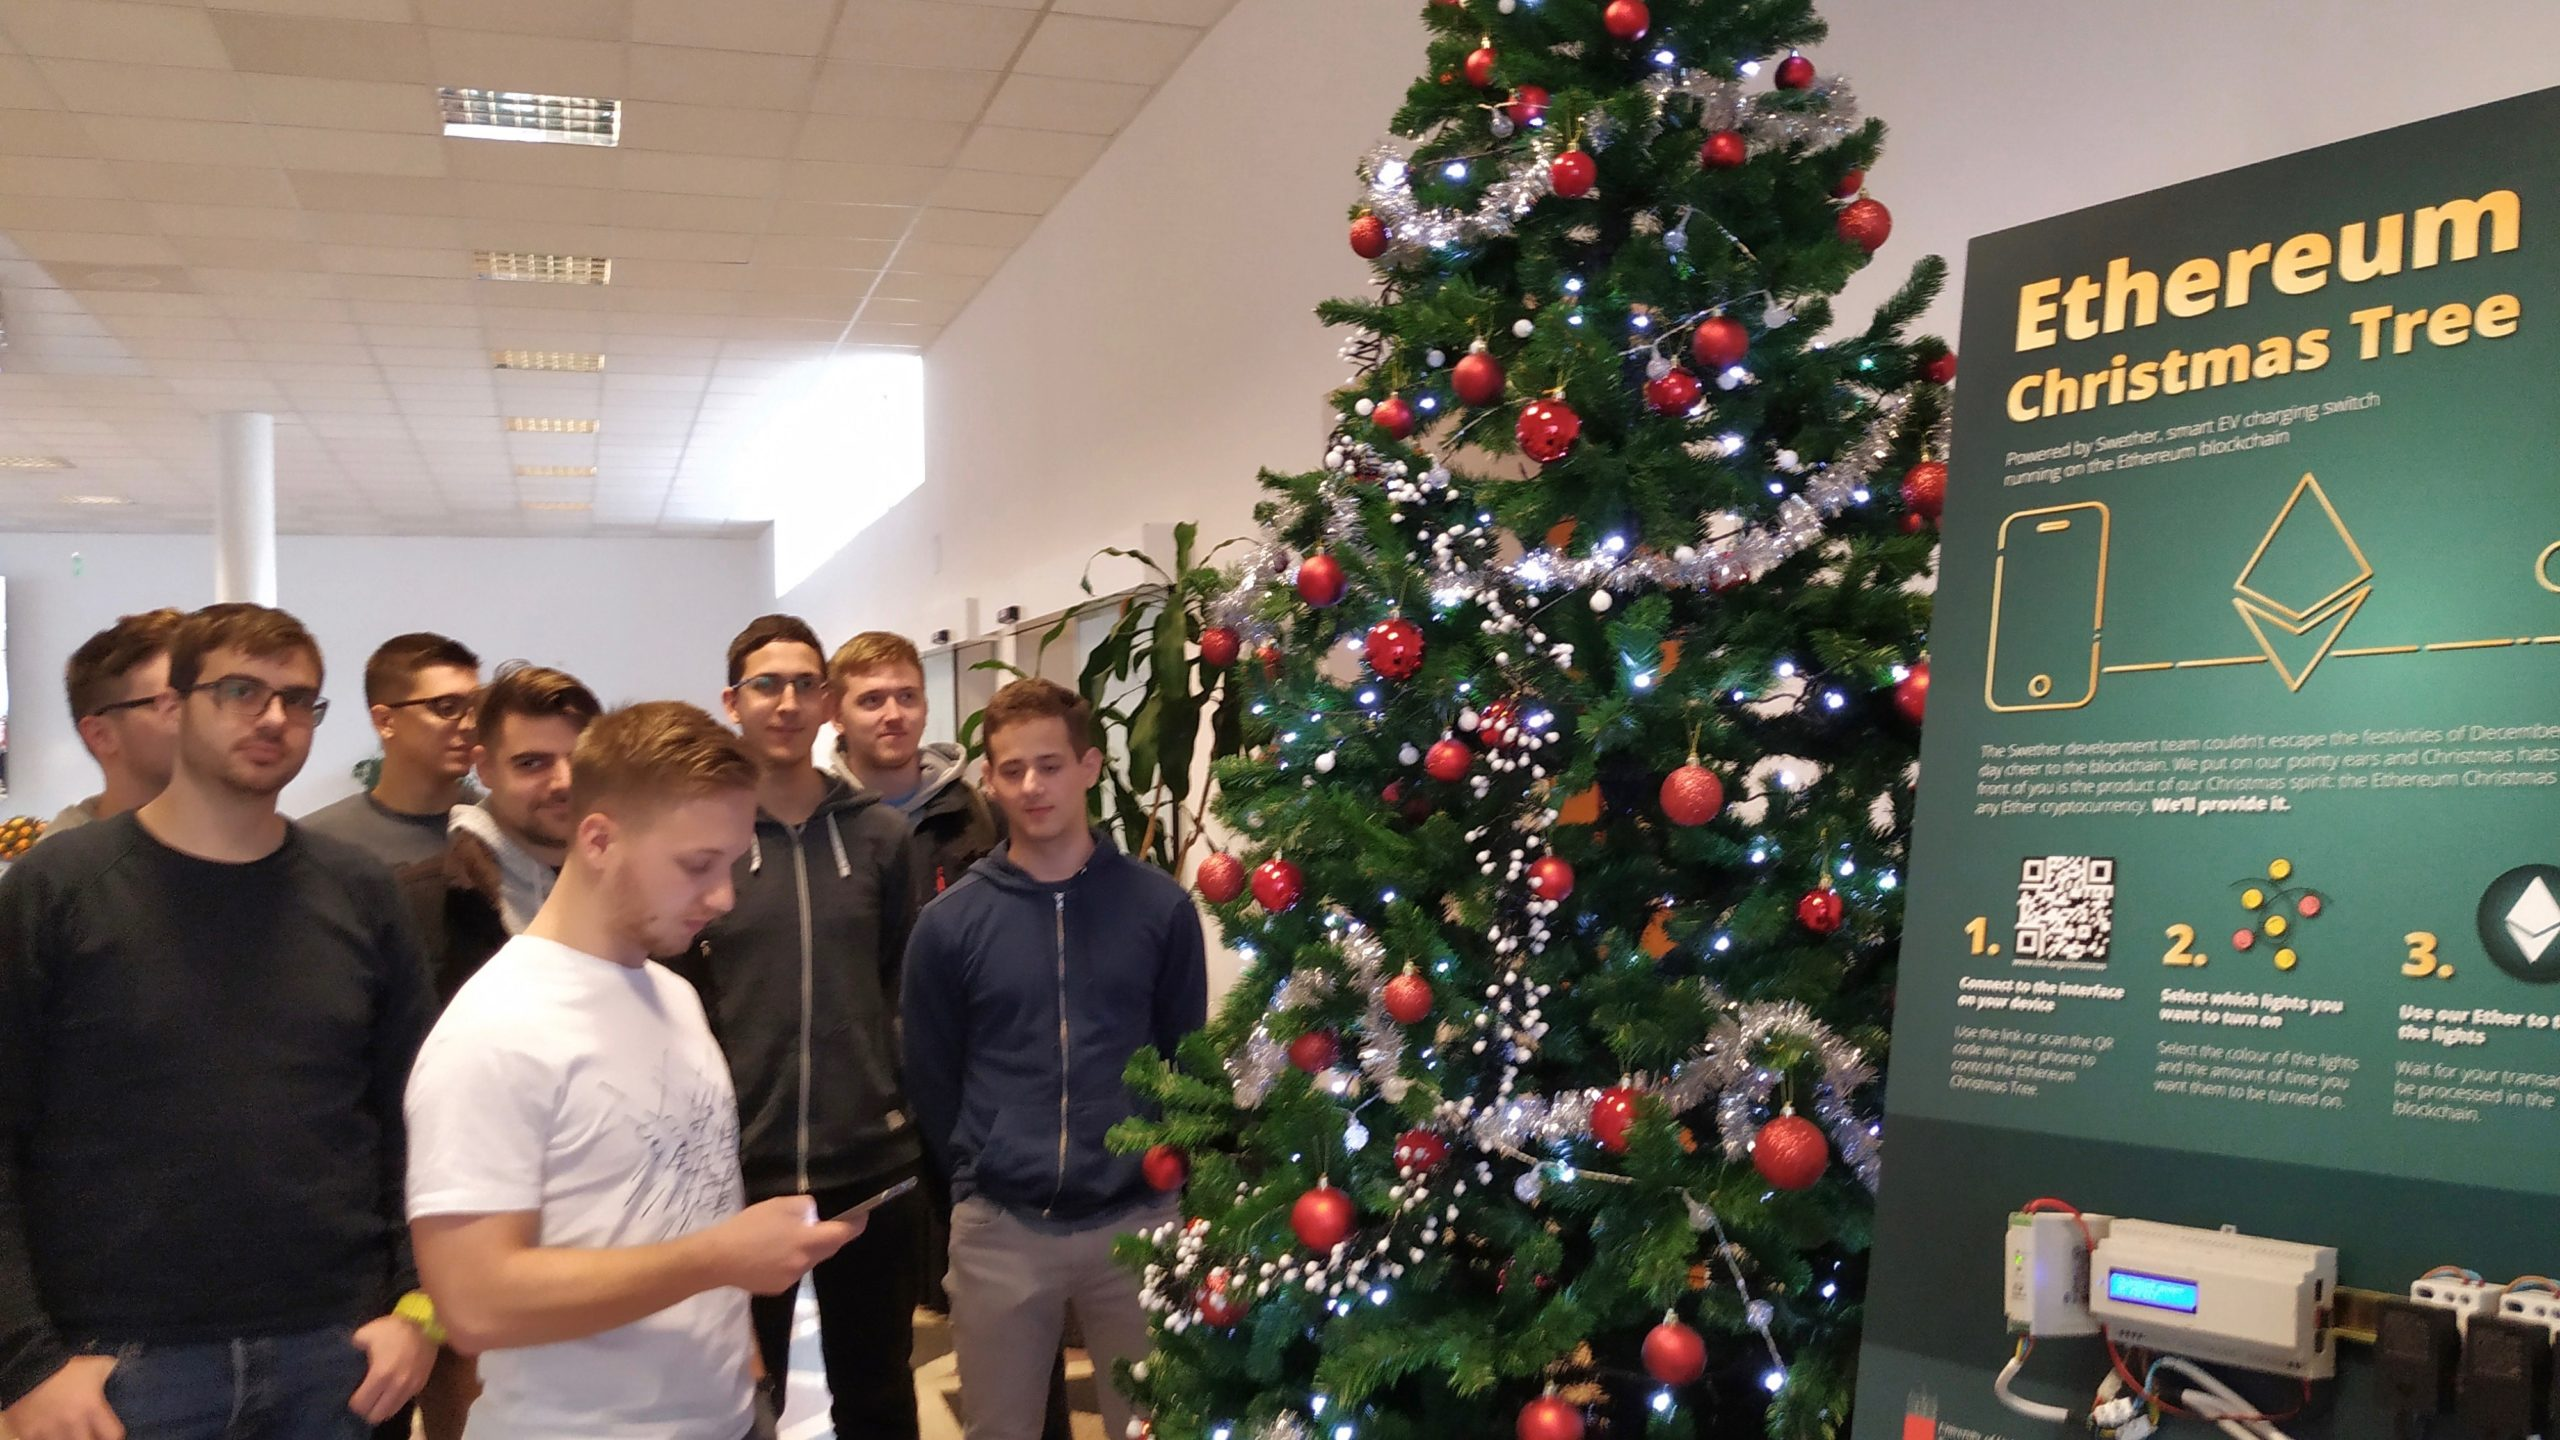 Now Christmas trees are going on the blockchain